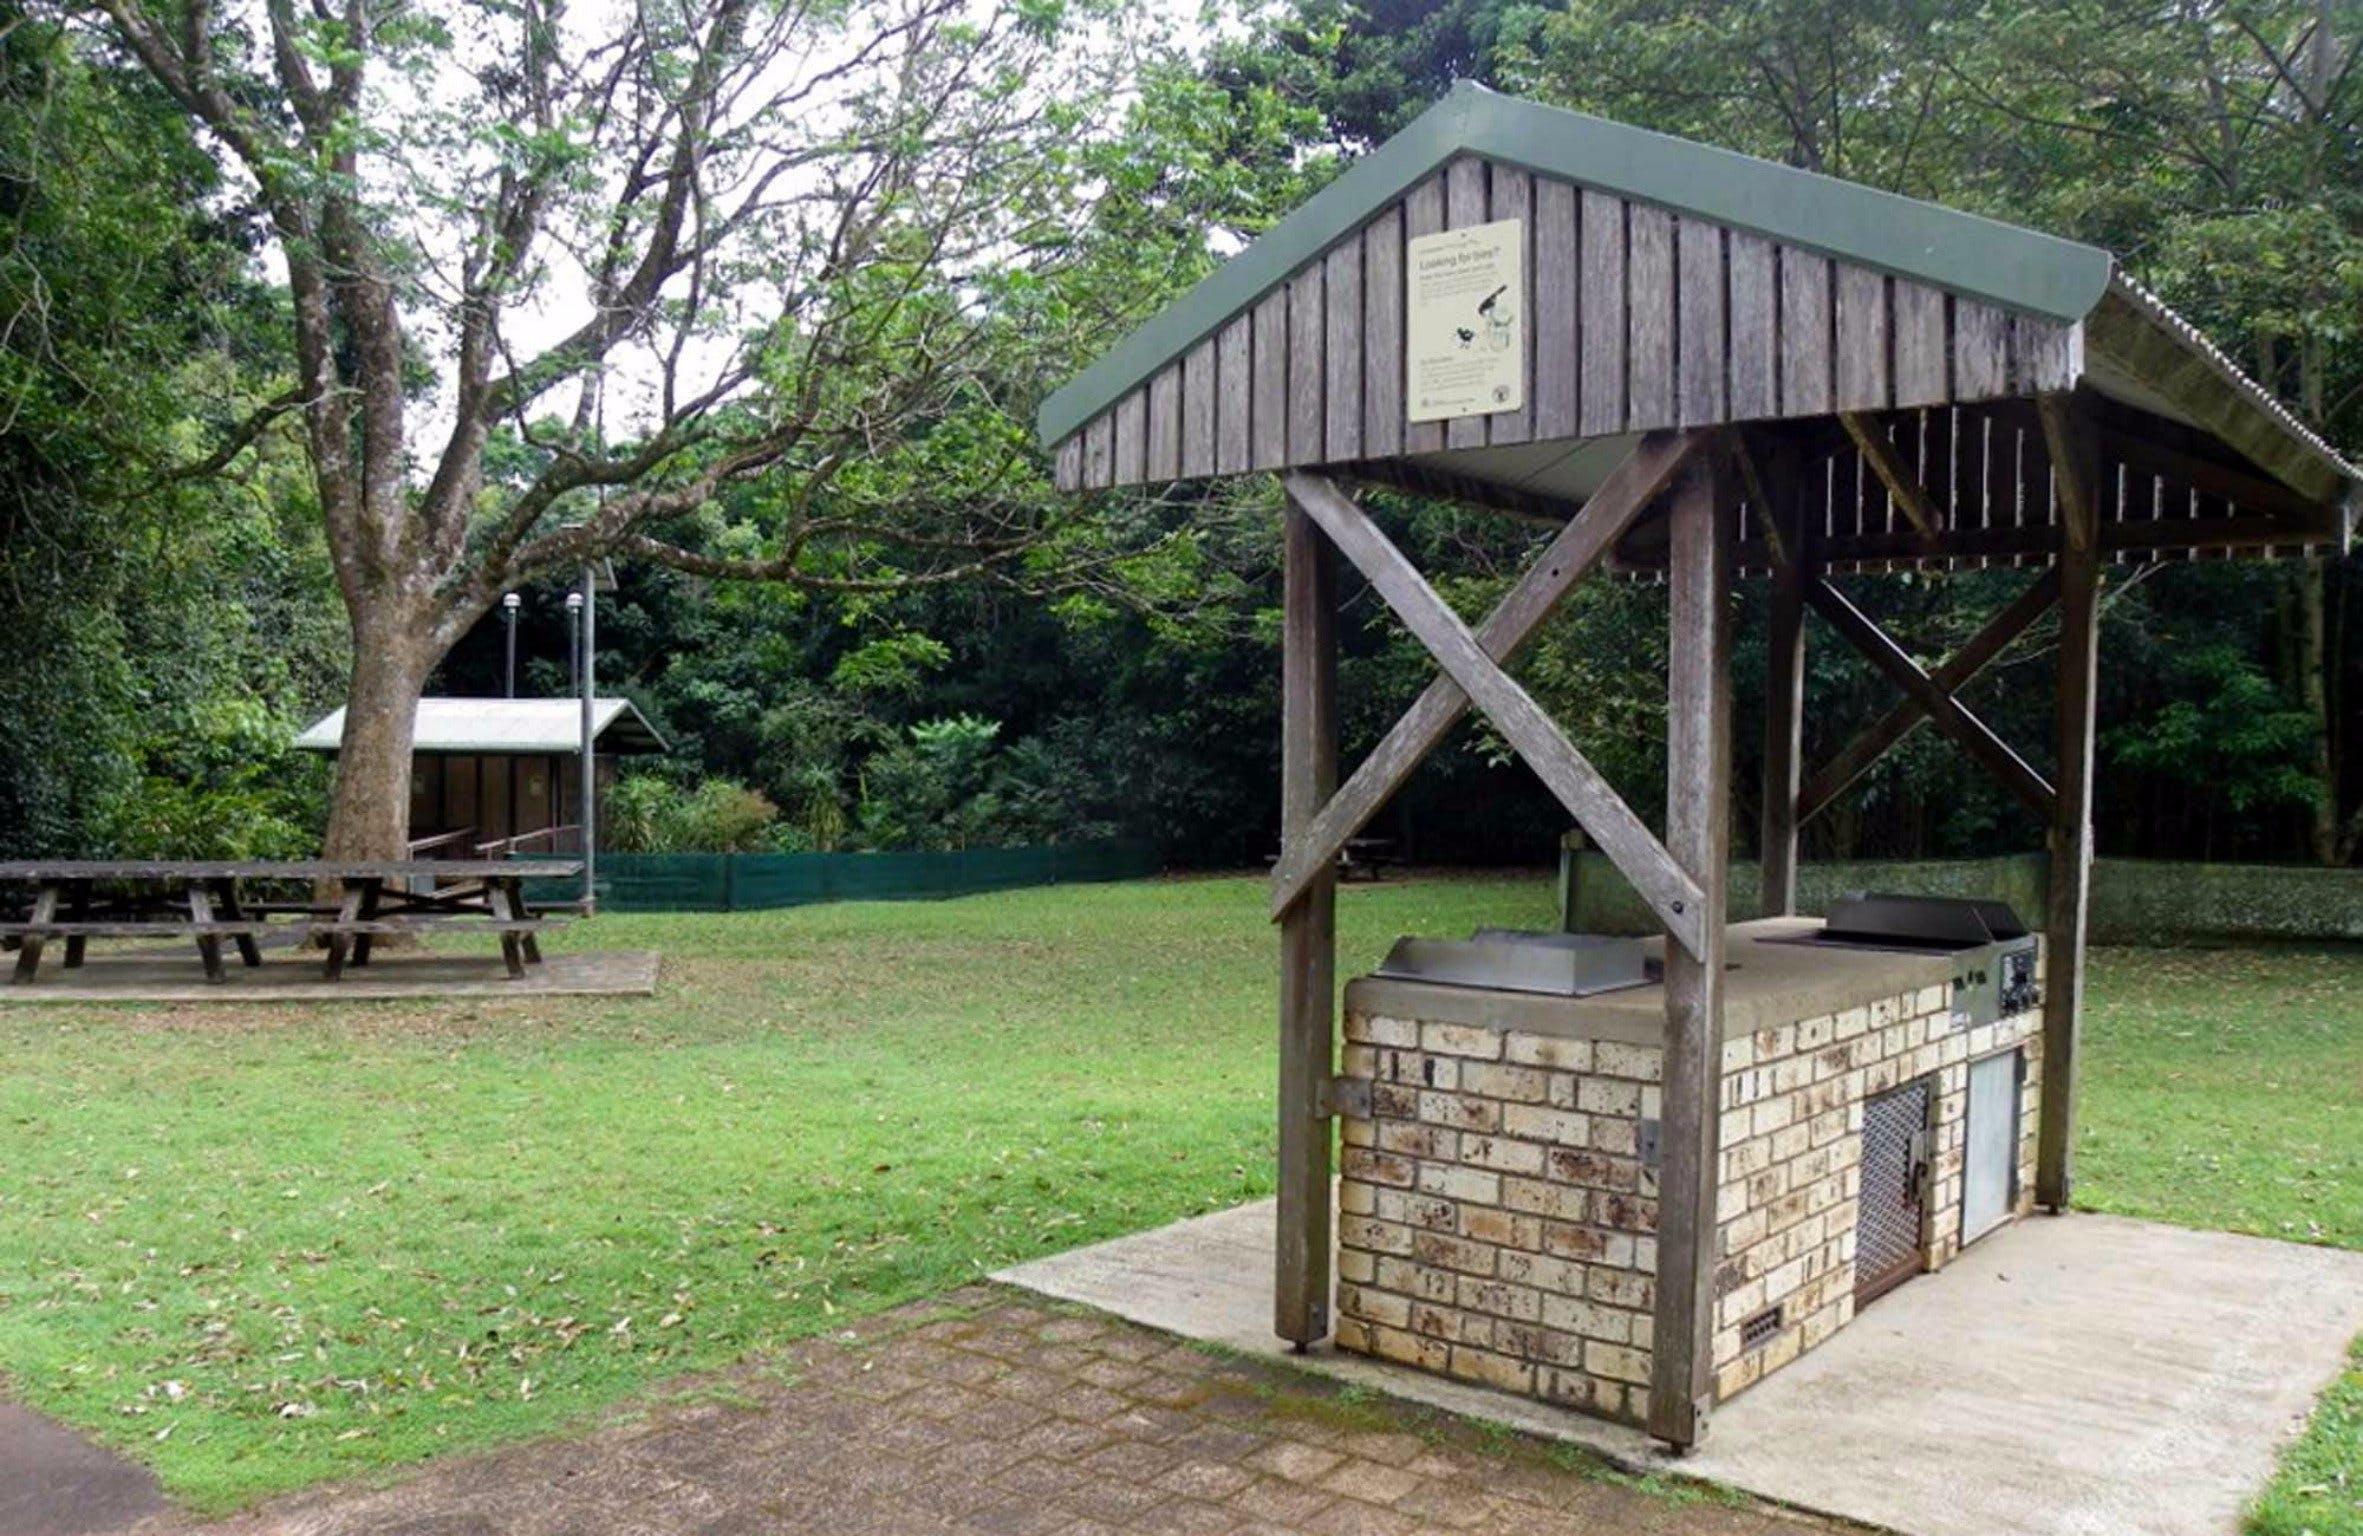 Victoria Park picnic area - Accommodation Sunshine Coast